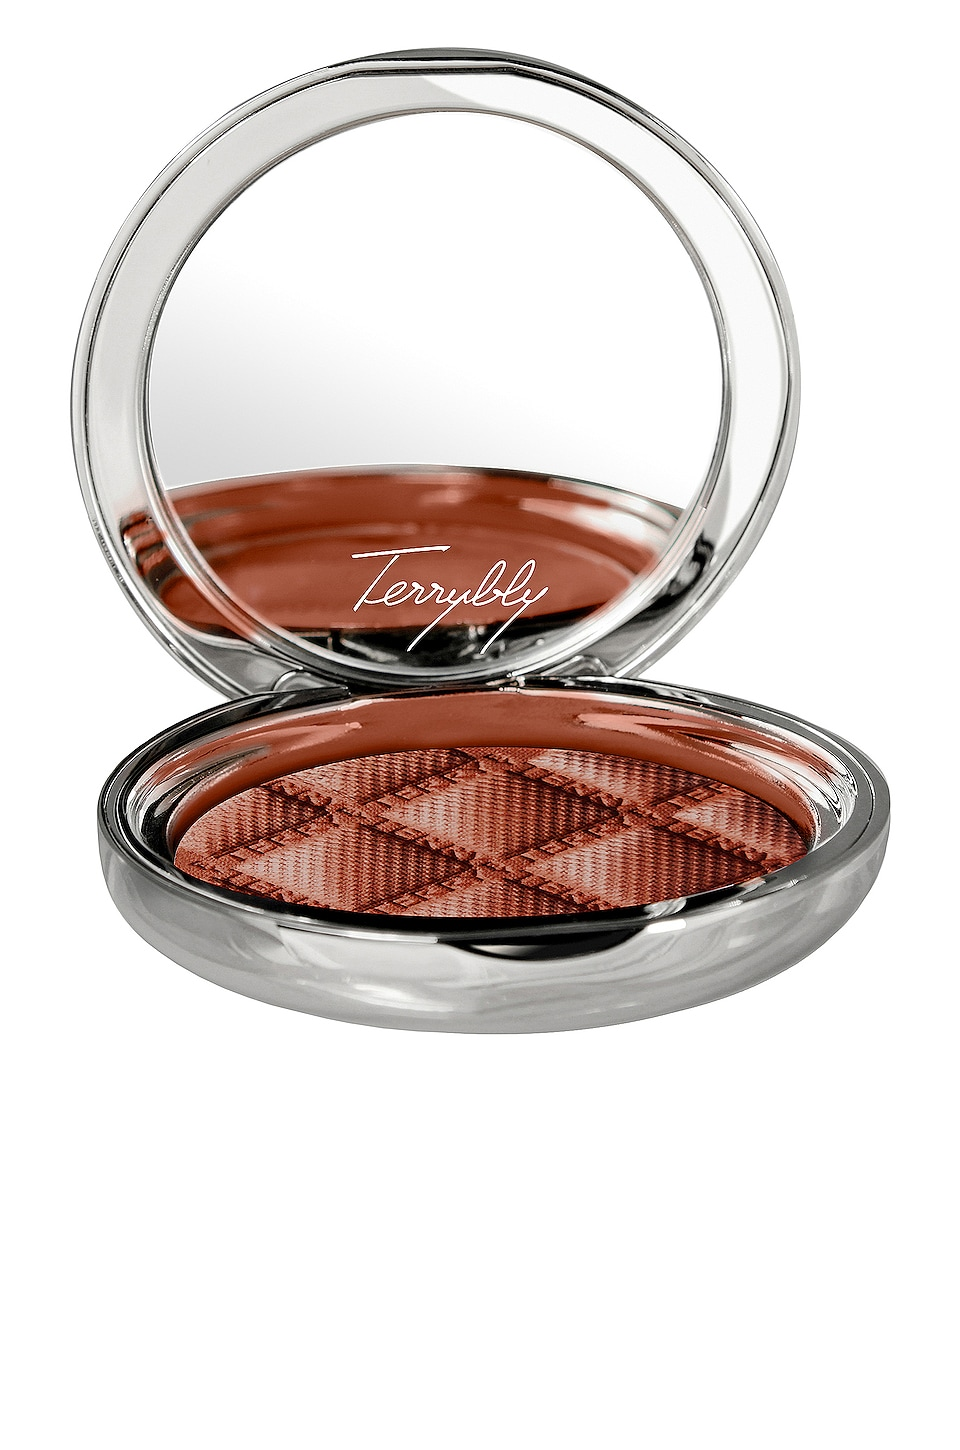 By Terry Terrybly Densiliss Compact Powder in Warm Sienna